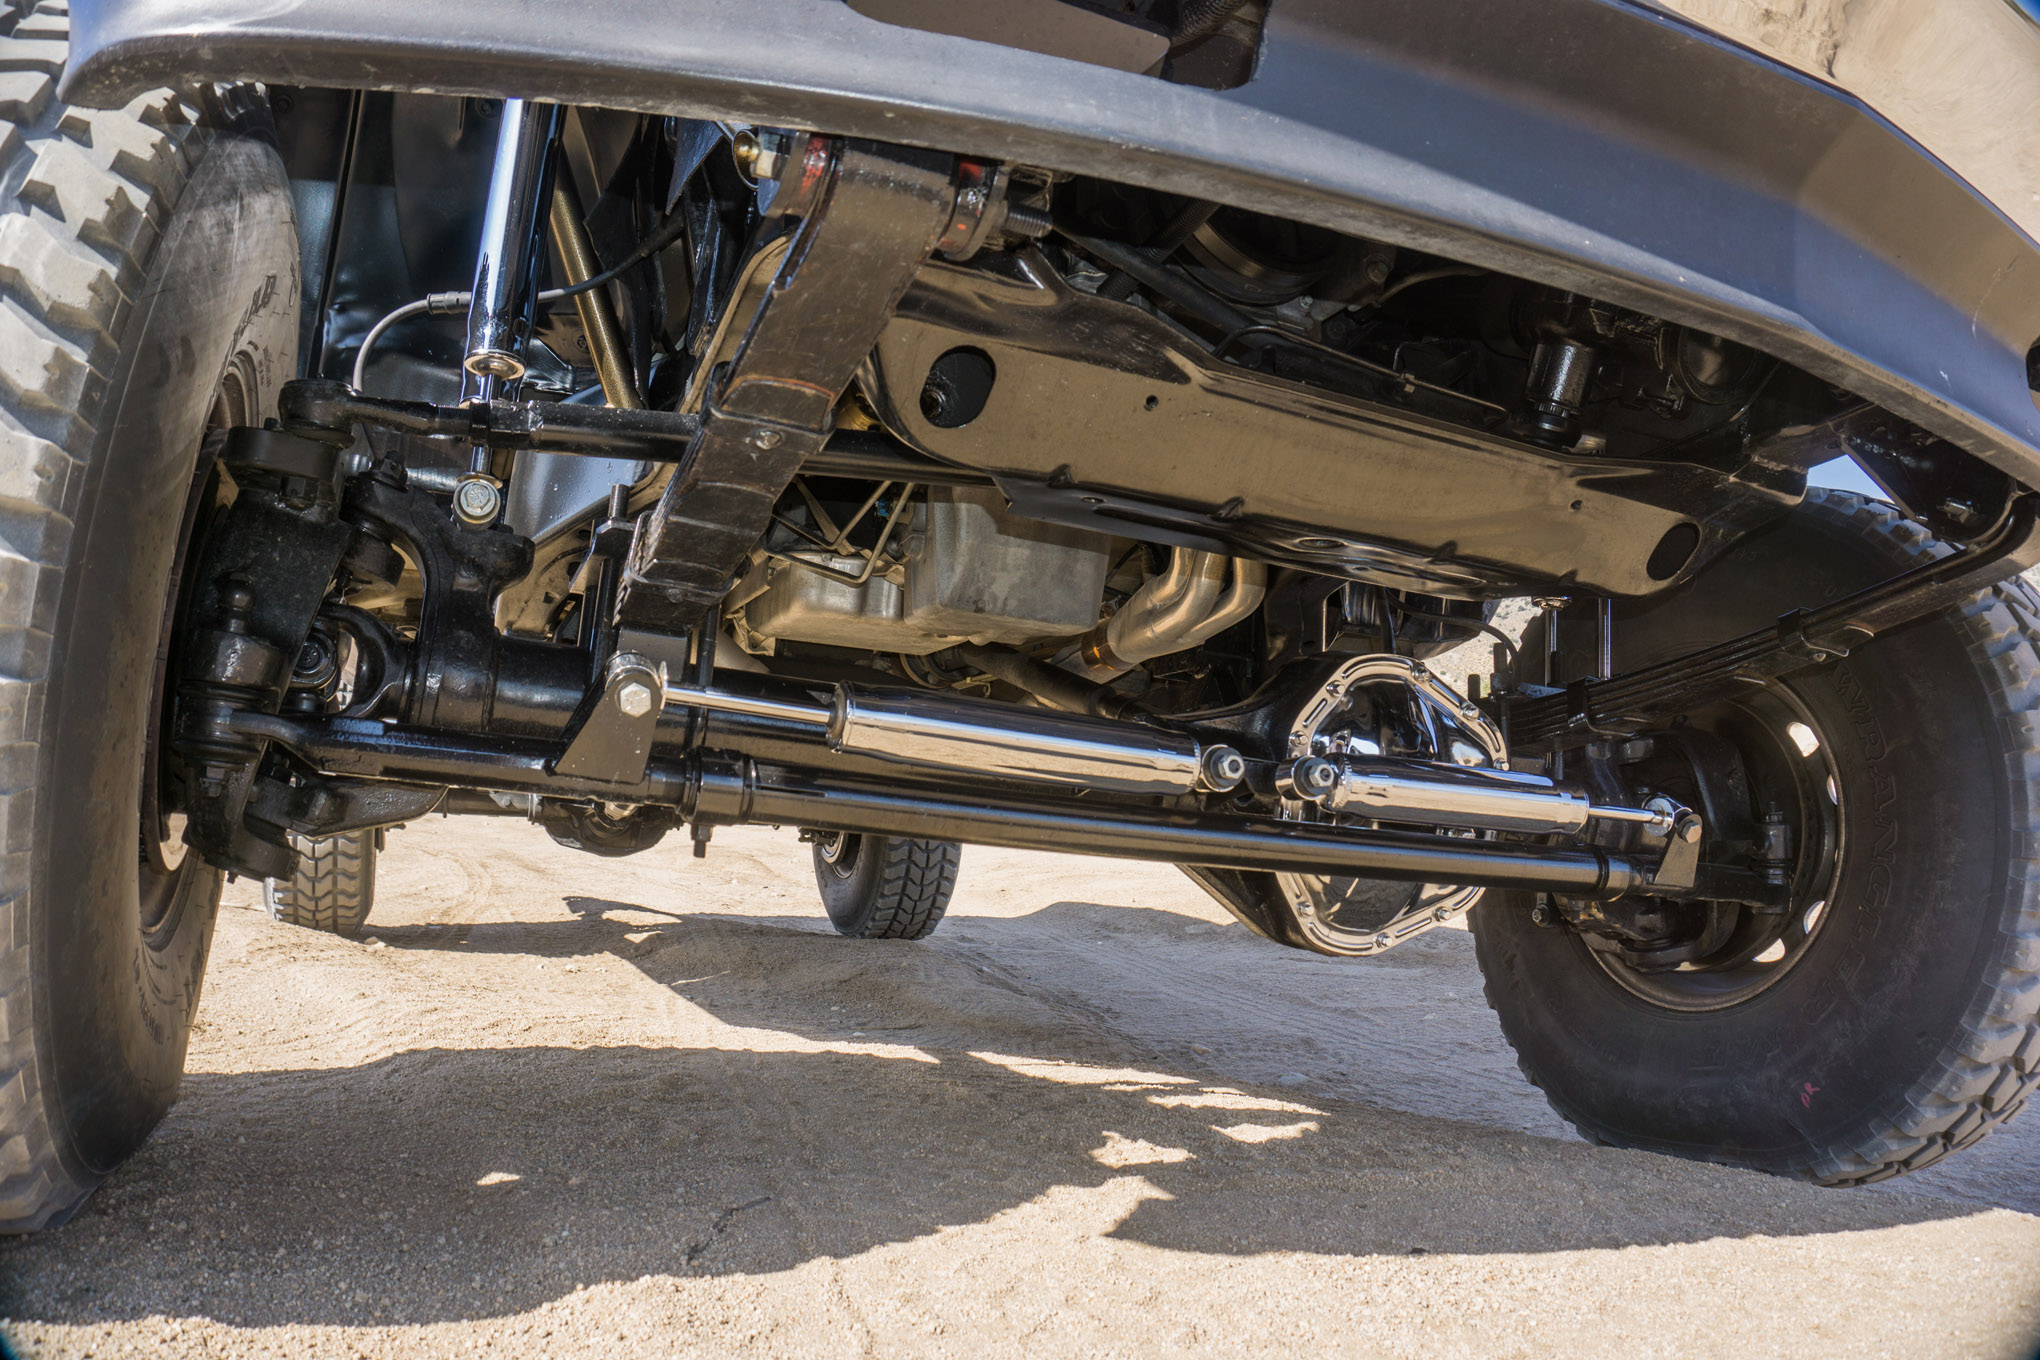 "This might be the first time you've seen chrome shocks in PETERSEN'S 4-WHEEL & OFF-ROAD since David Freiburger took over as editor in 1994, but we think enough time has passed to point out the study in contrasts on this GMC. The Offroad Design solid-axle swap kit and a 1-ton front axle suggest it could do some legit wheeling. At the same time, the dual chrome shocks and chrome diff cover scream ""show truck!"""